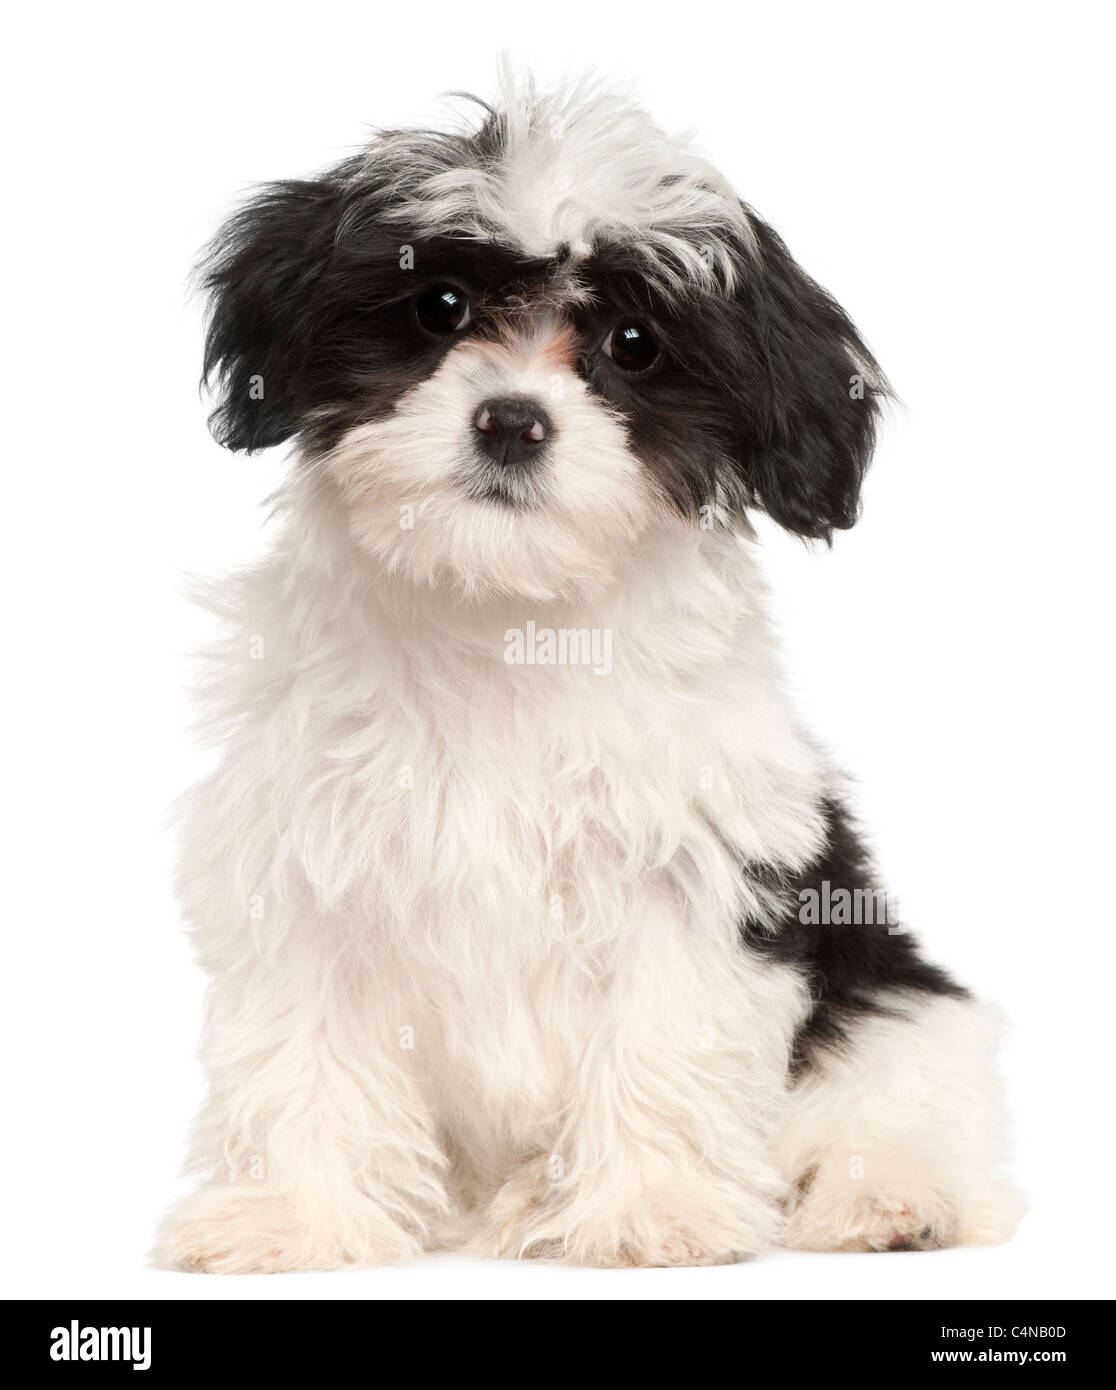 Havanese puppy, 12 weeks old, sitting in front of white background - Stock Image